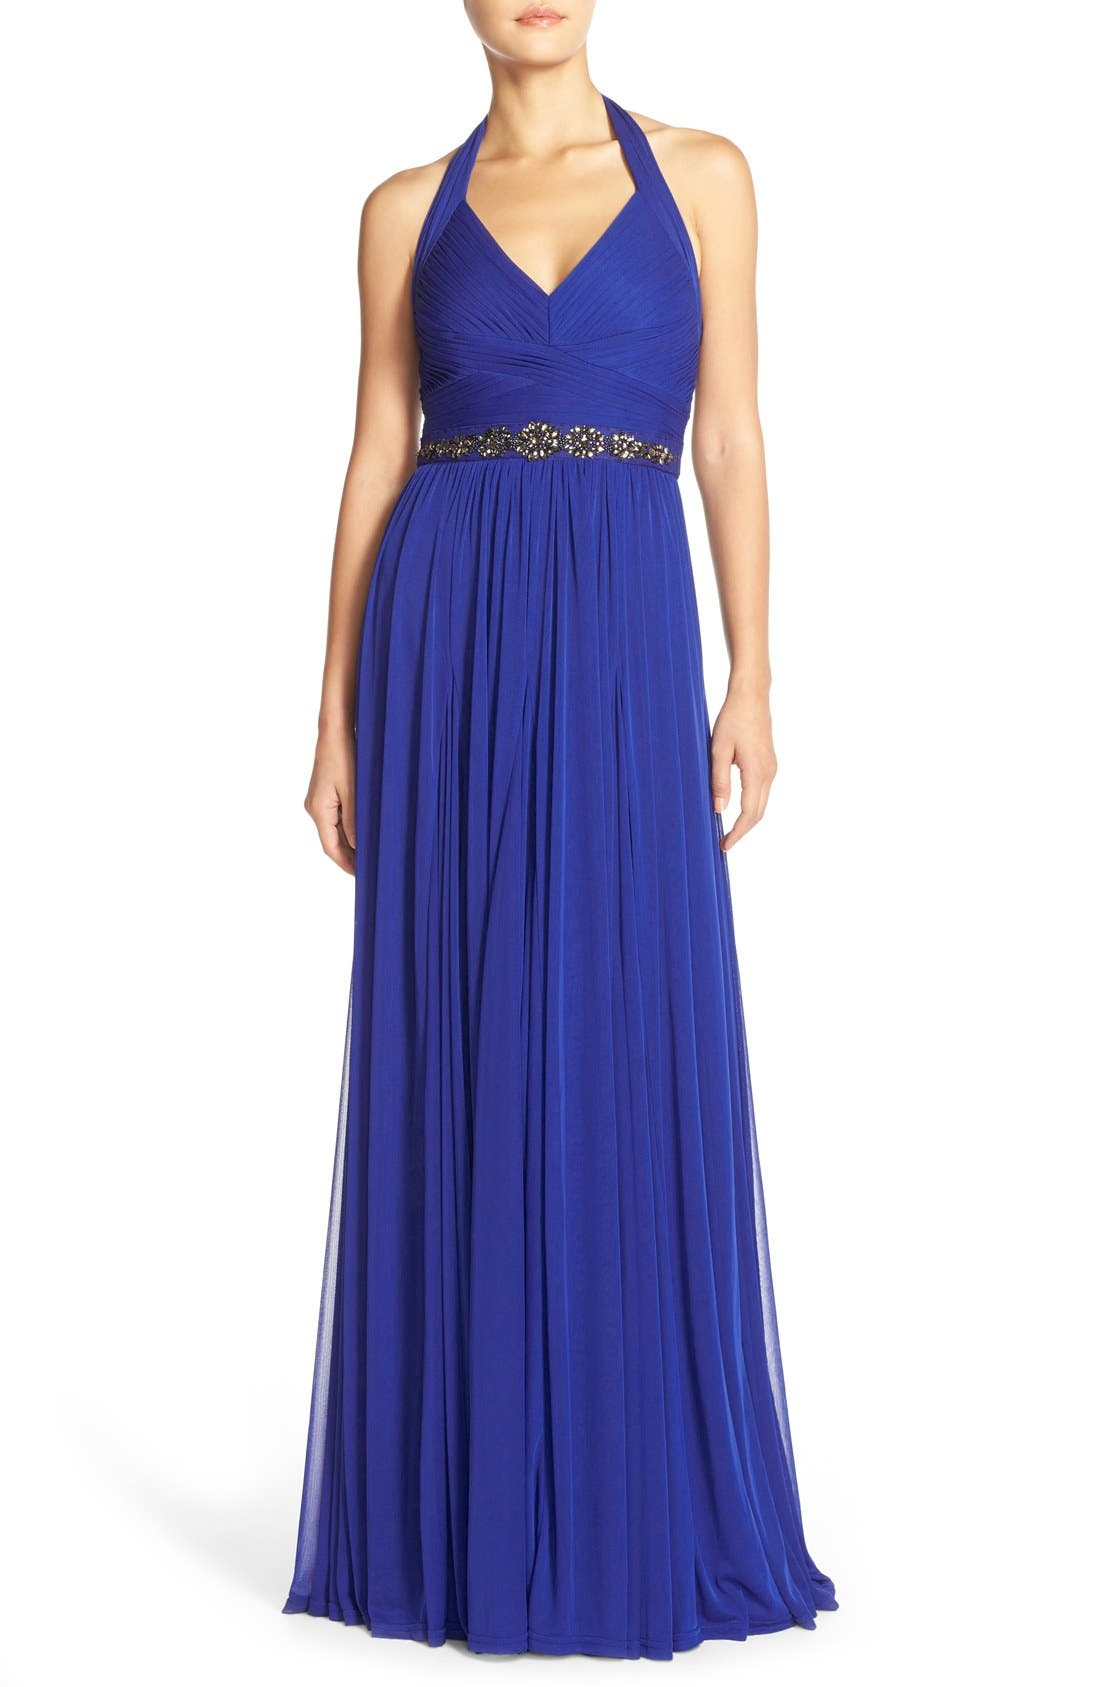 Embellished Tulle Halter Gown,                             Main thumbnail 1, color,                             437